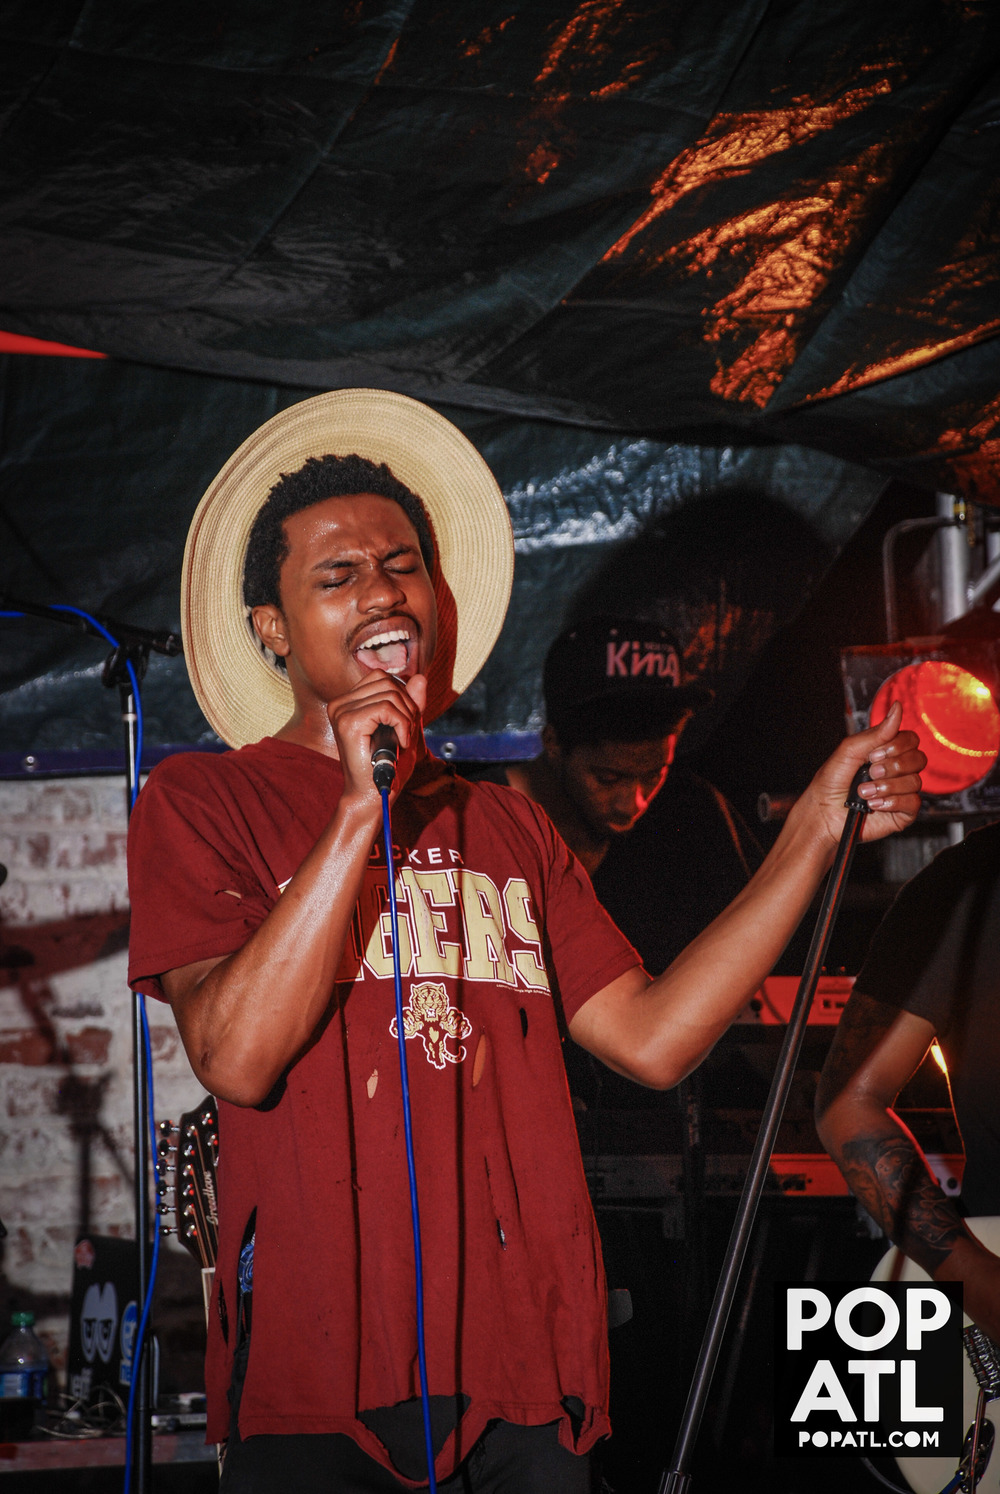 RAURY-RAURFEST-AT-POP-ATL-150.jpg